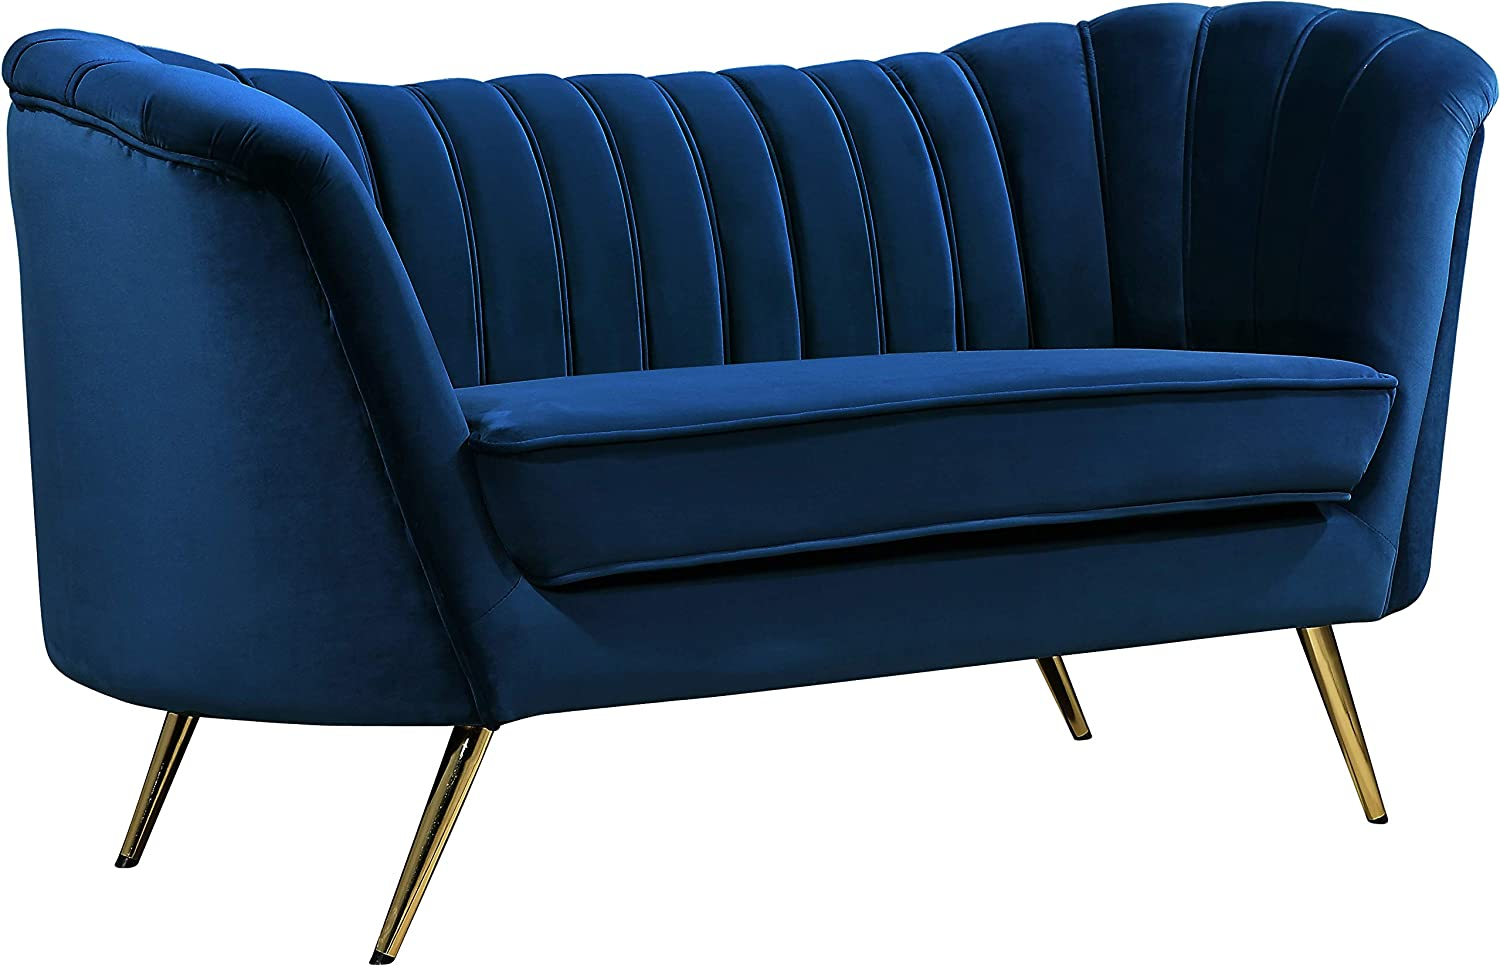 Meridian Furniture Margo Collection Modern | Contemporary Velvet Upholstered Loveseat with Deep Channel Tufting and Rich Gold Stainless Steel Legs, Navy, 65